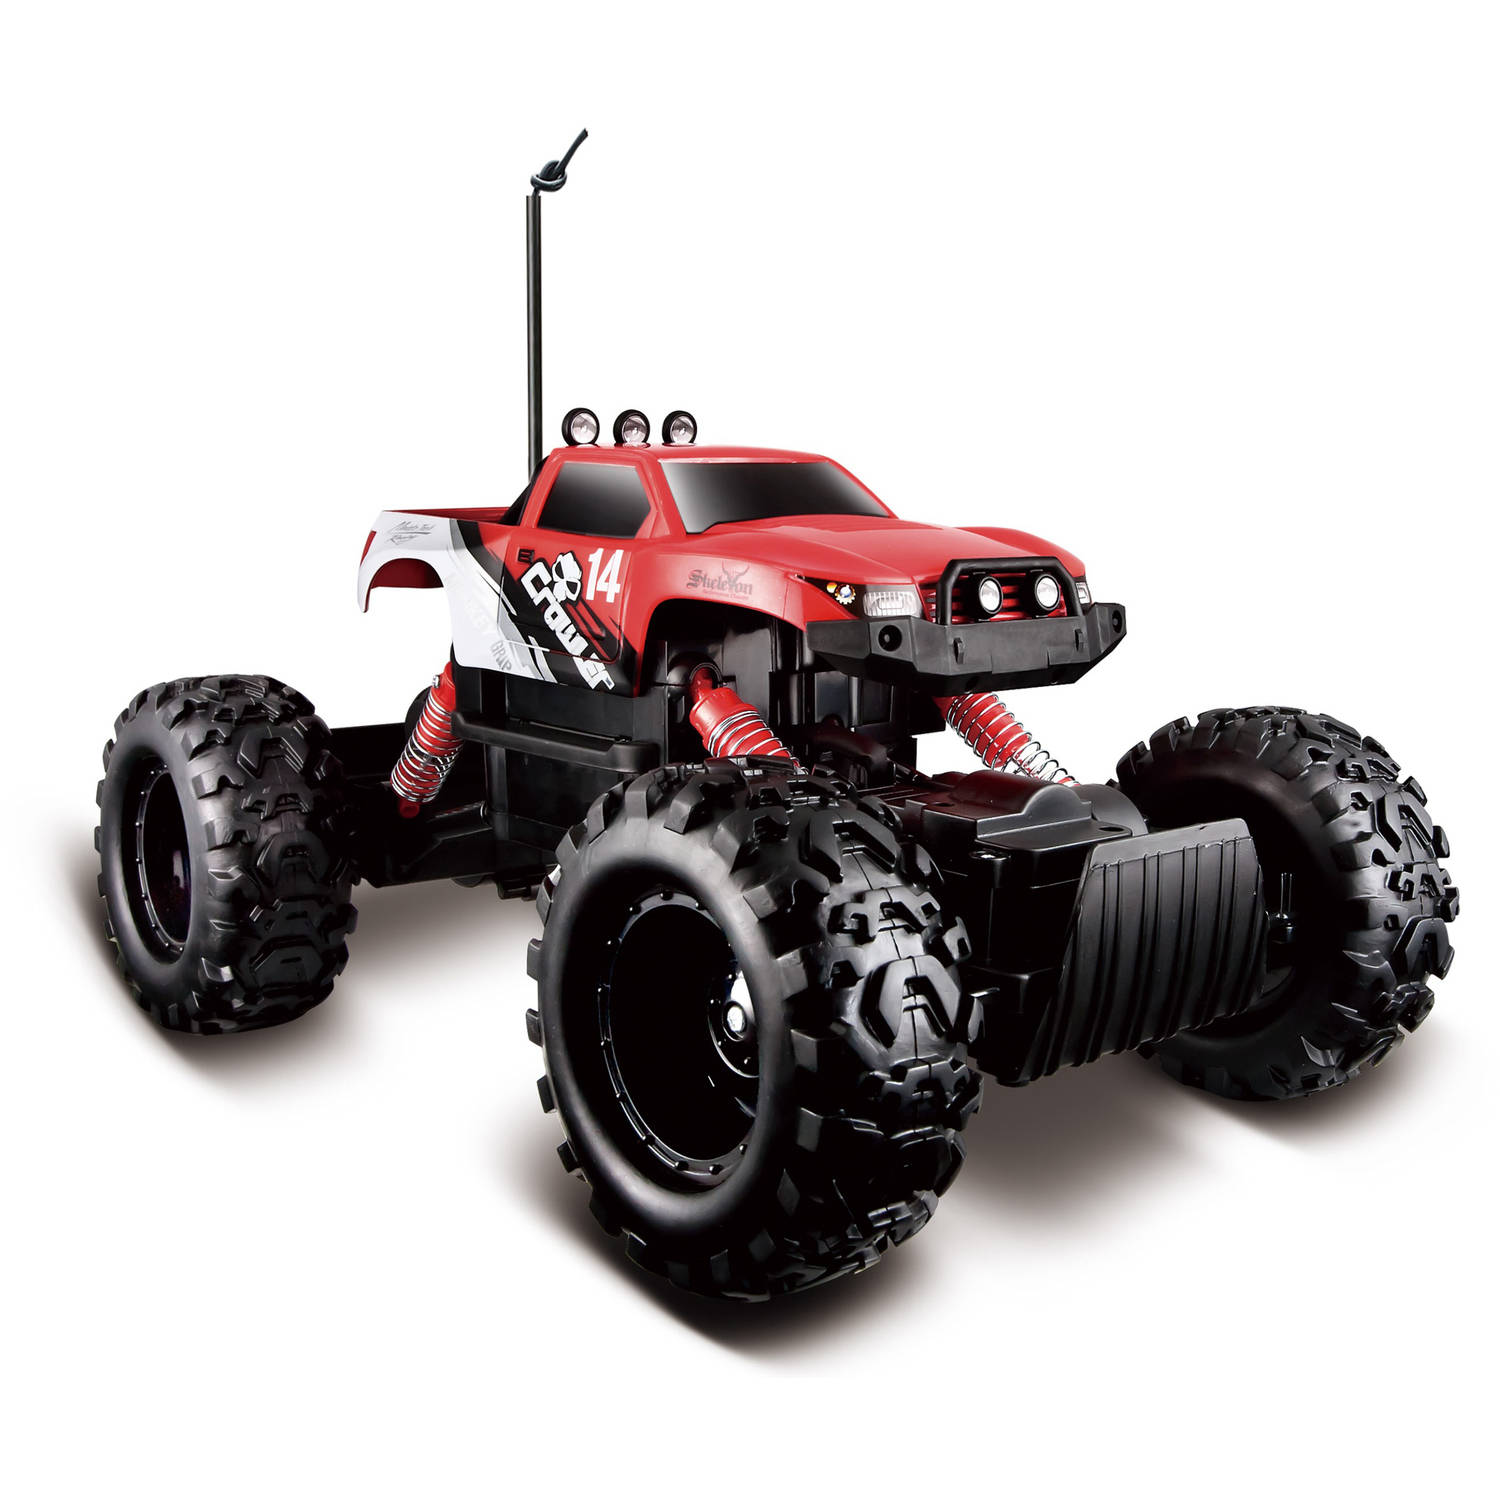 Maisto Tech Crawler Radio-Controlled Vehicle - Color may vary